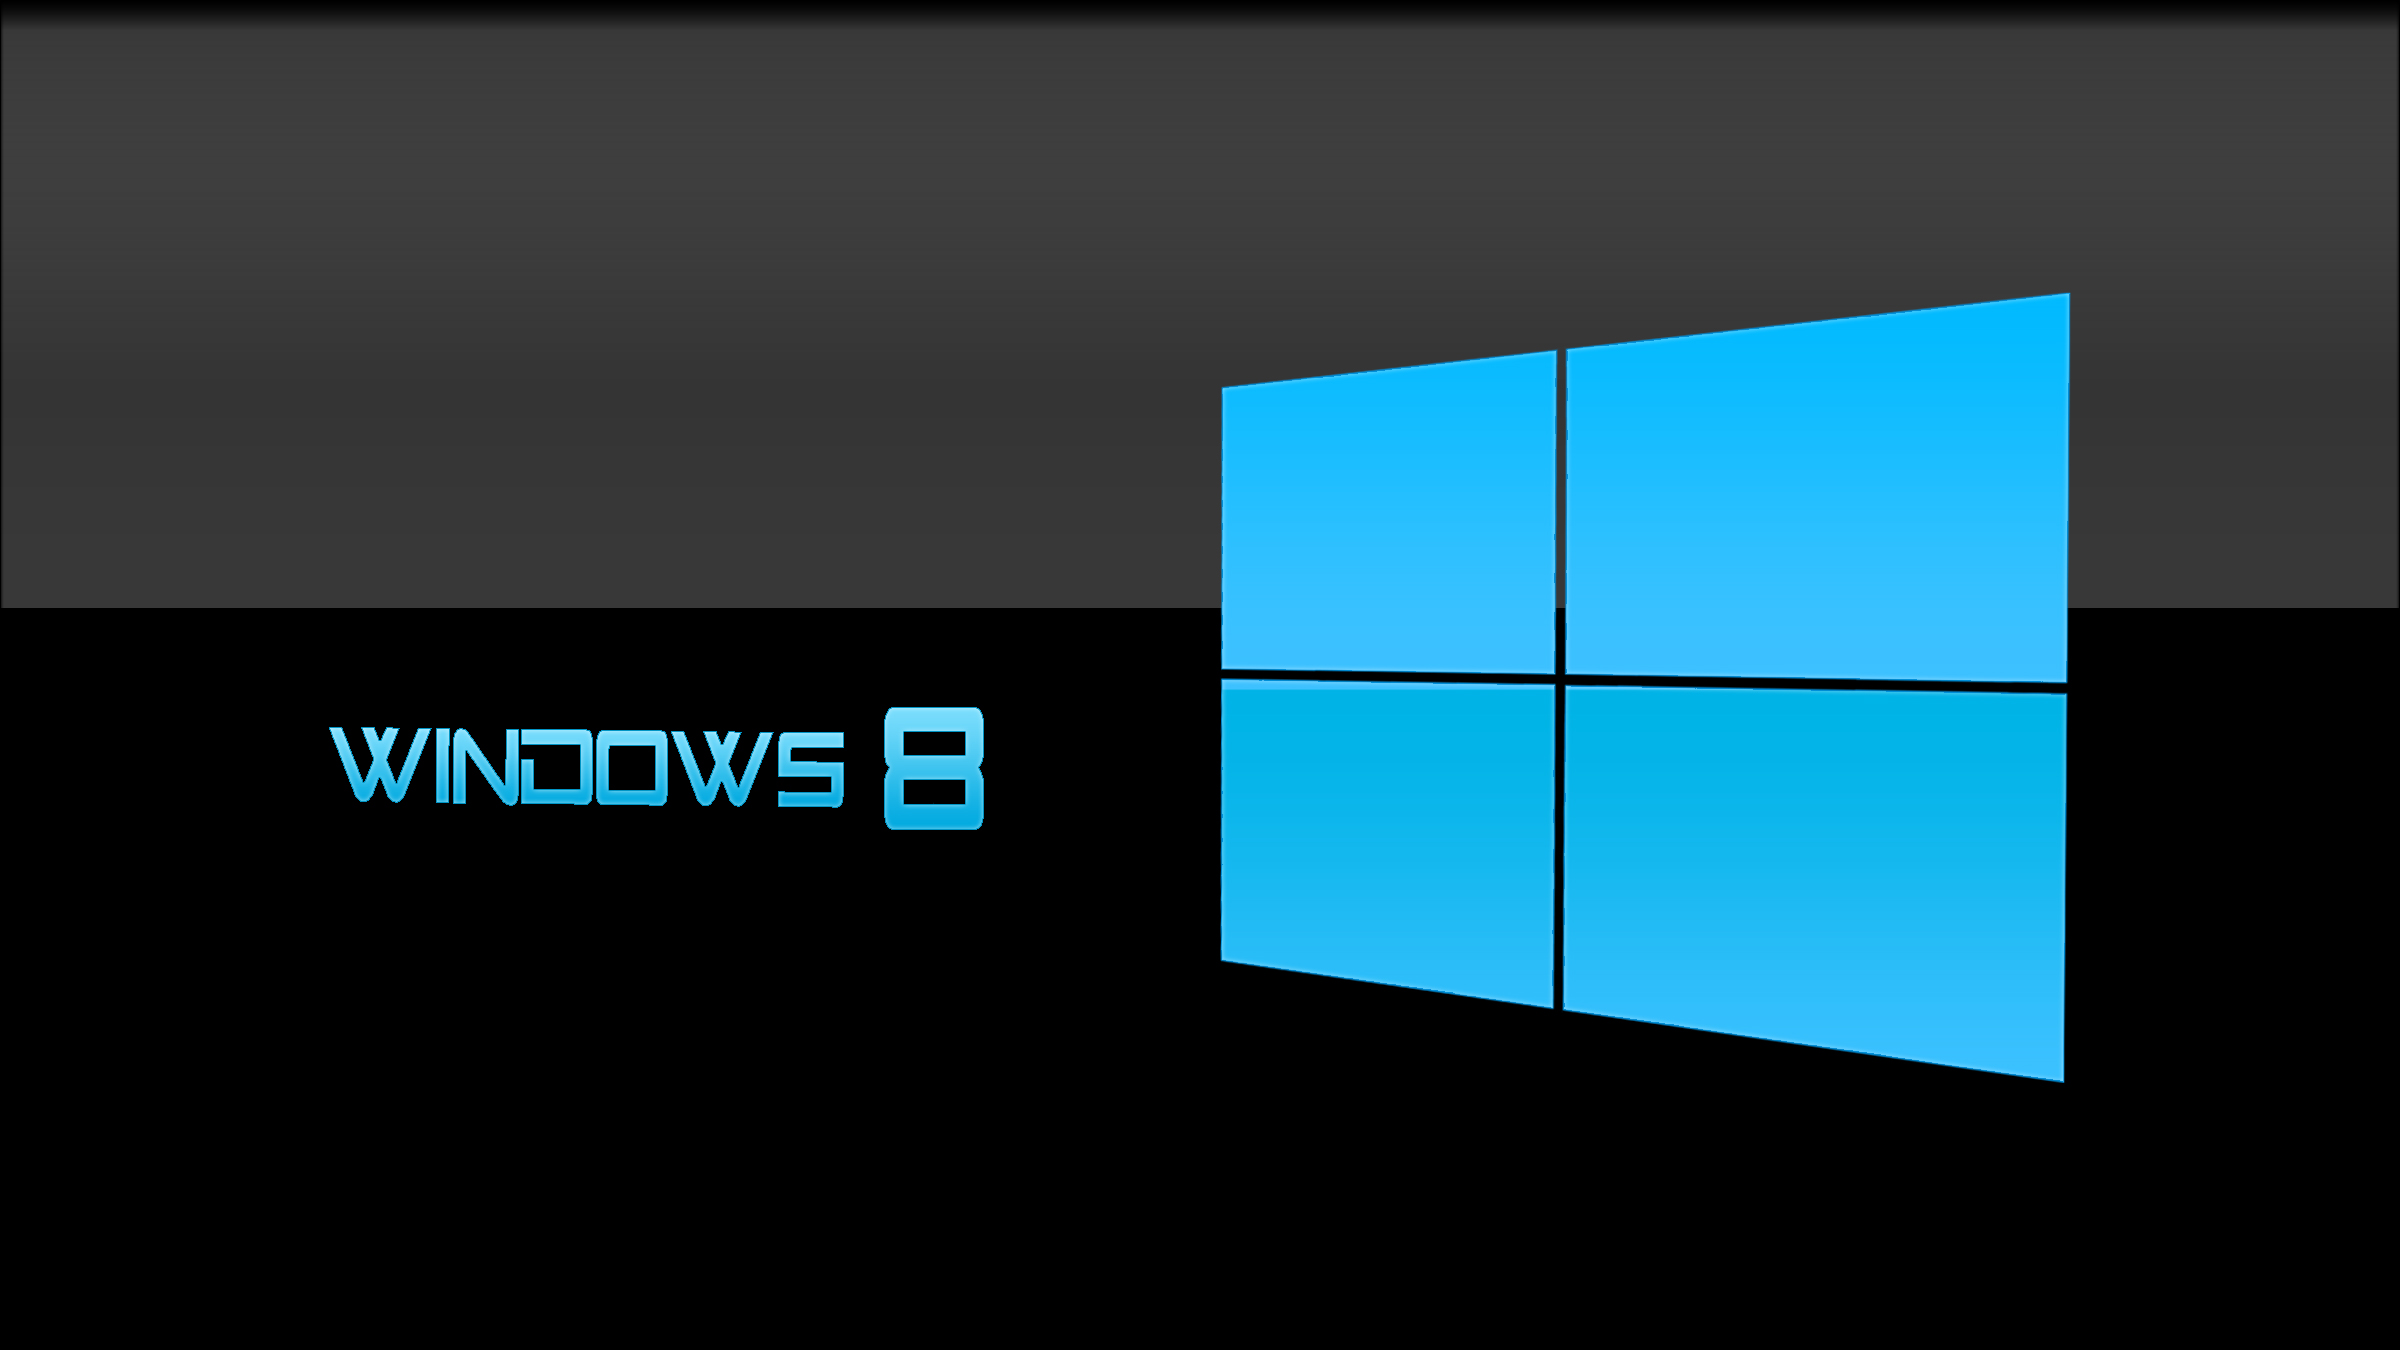 hd windows 8 backgrounds 041